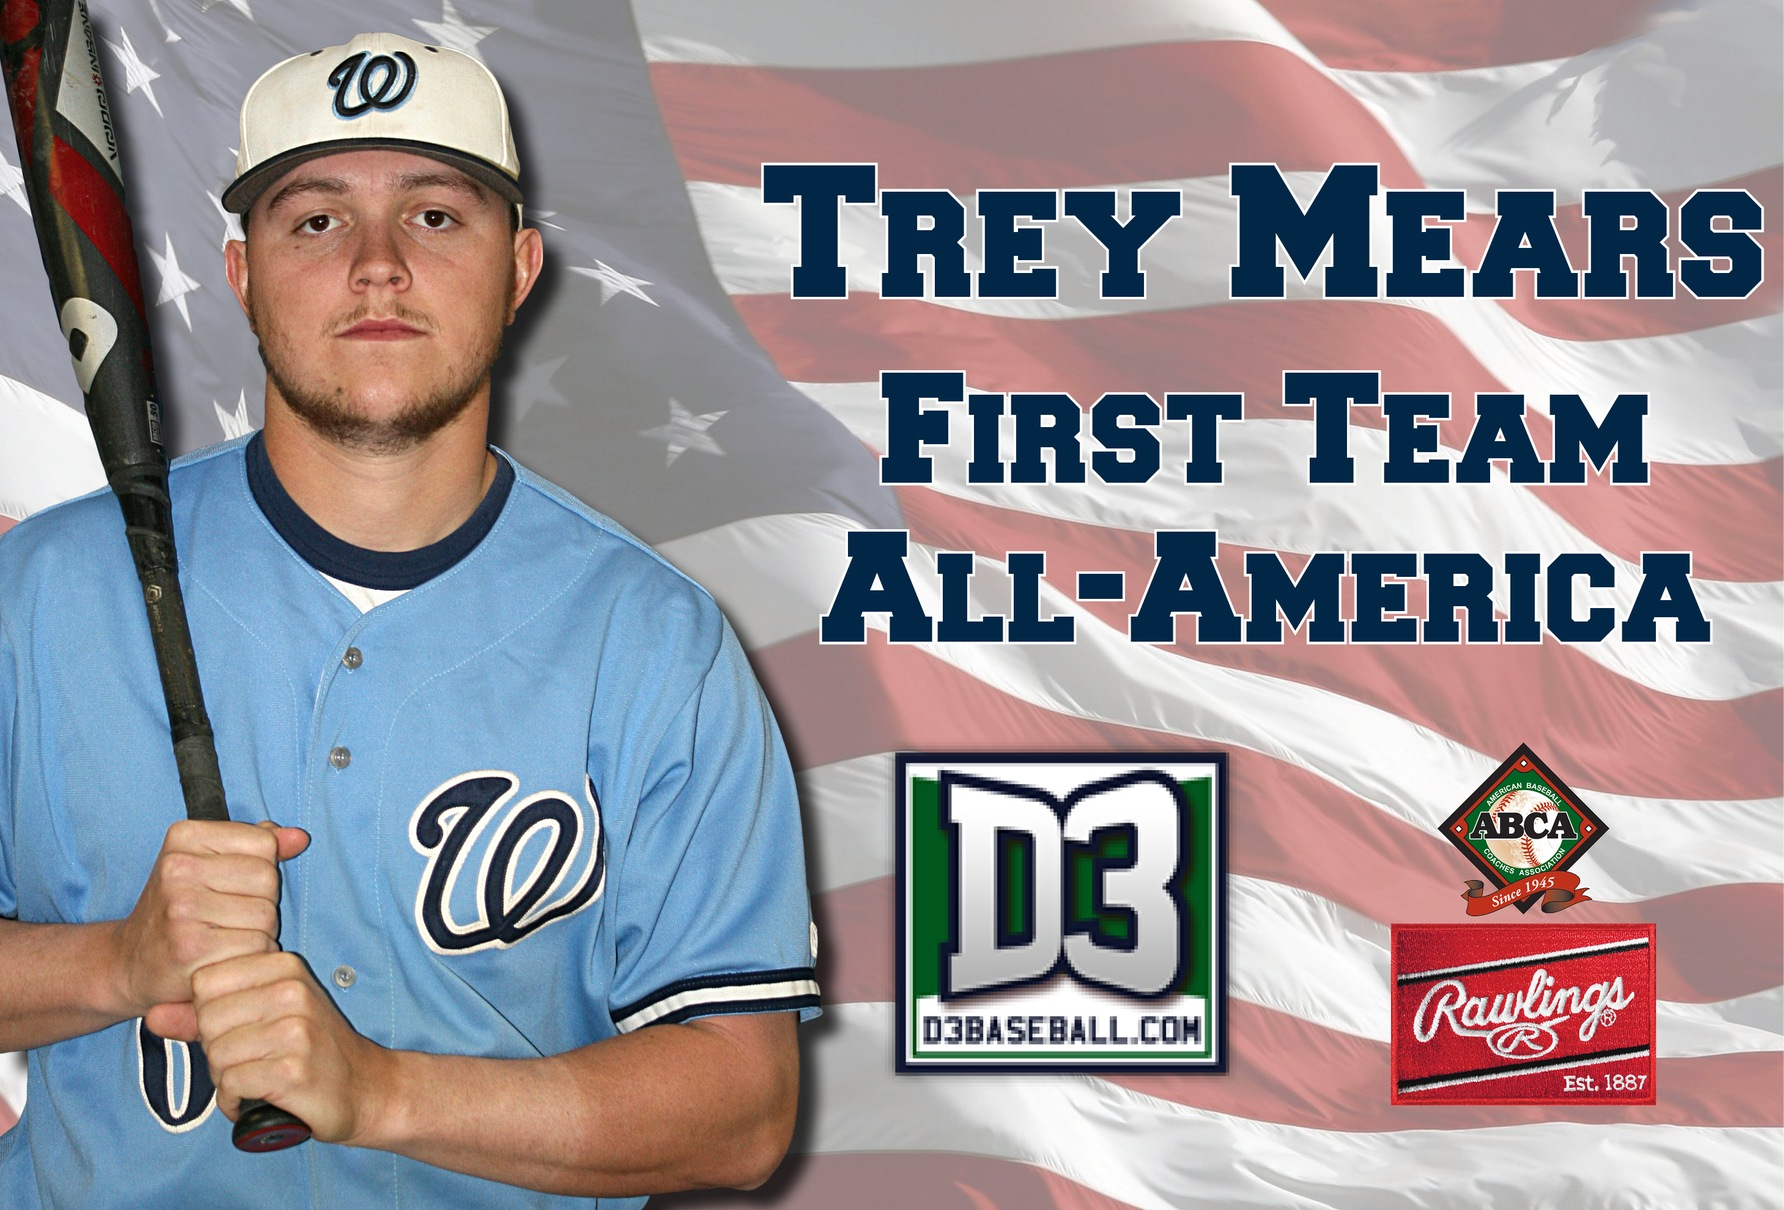 Mears collects First Team All-America honors from ABCA/Rawlings and D3baseball.com